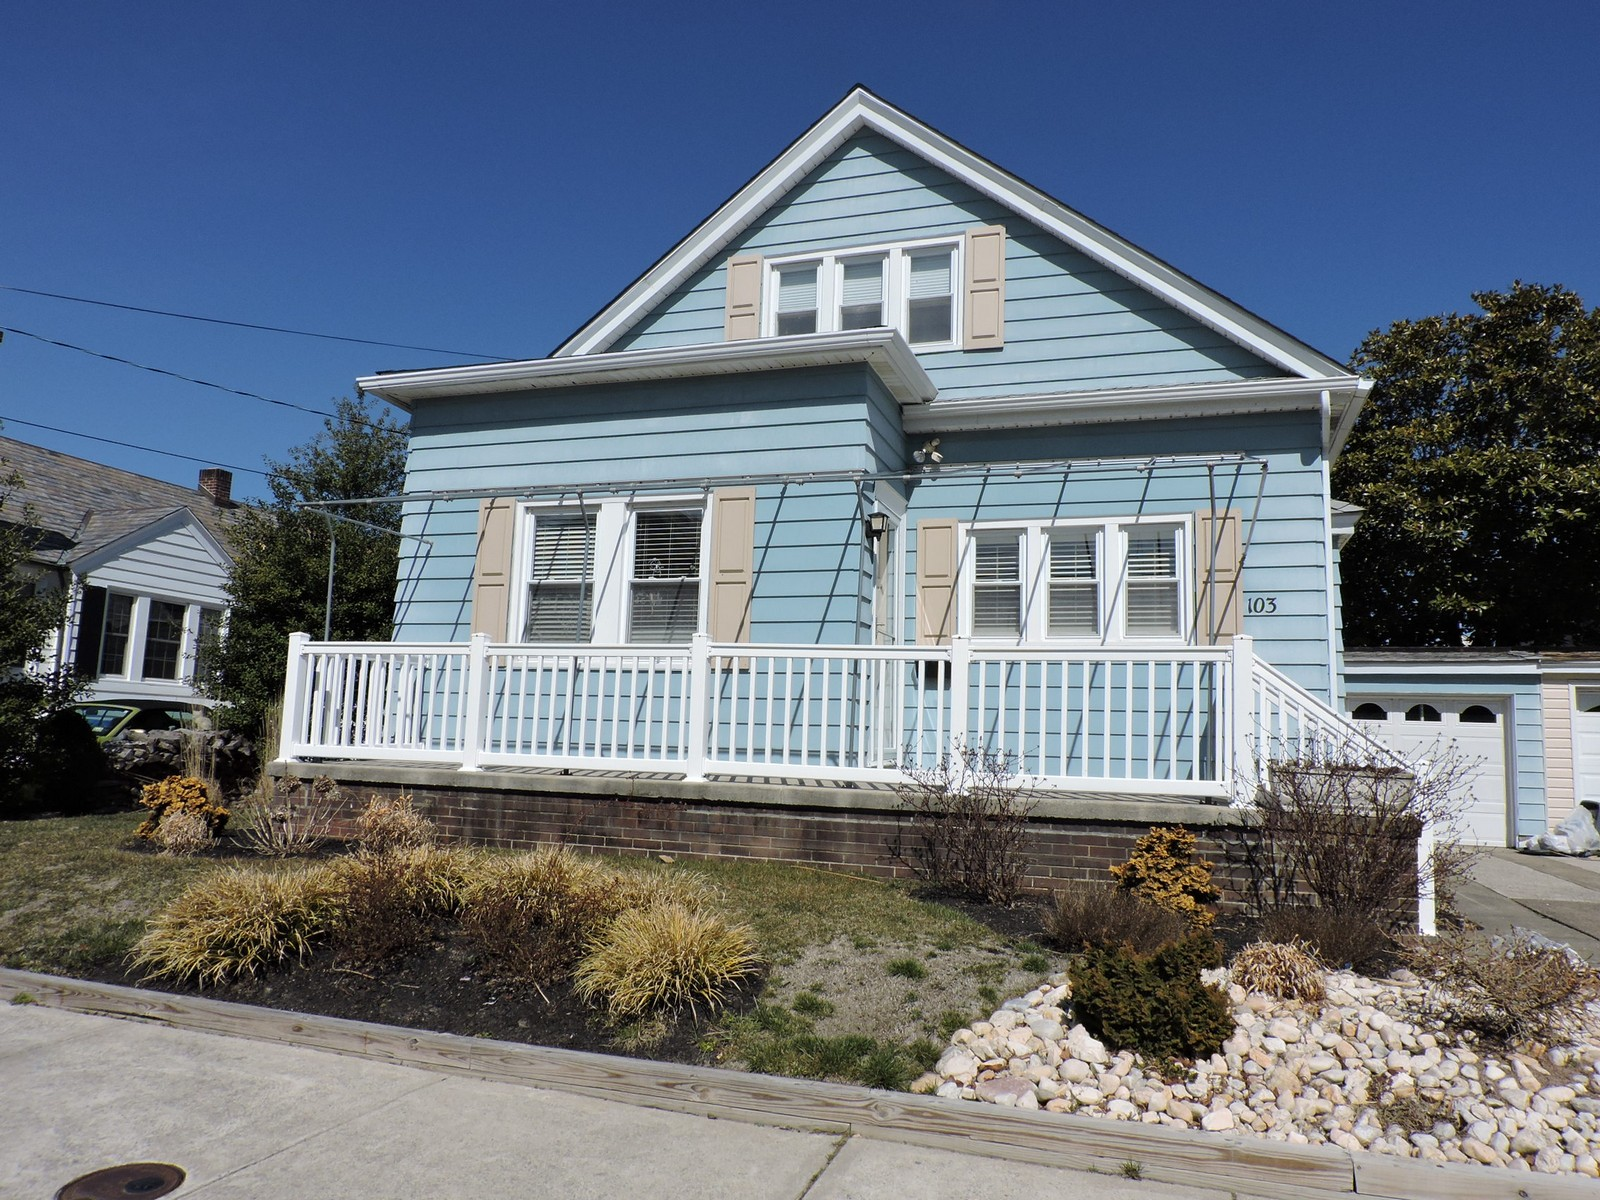 Single Family Home for Sale at 103 N Essex Avenue Margate, New Jersey 08402 United States